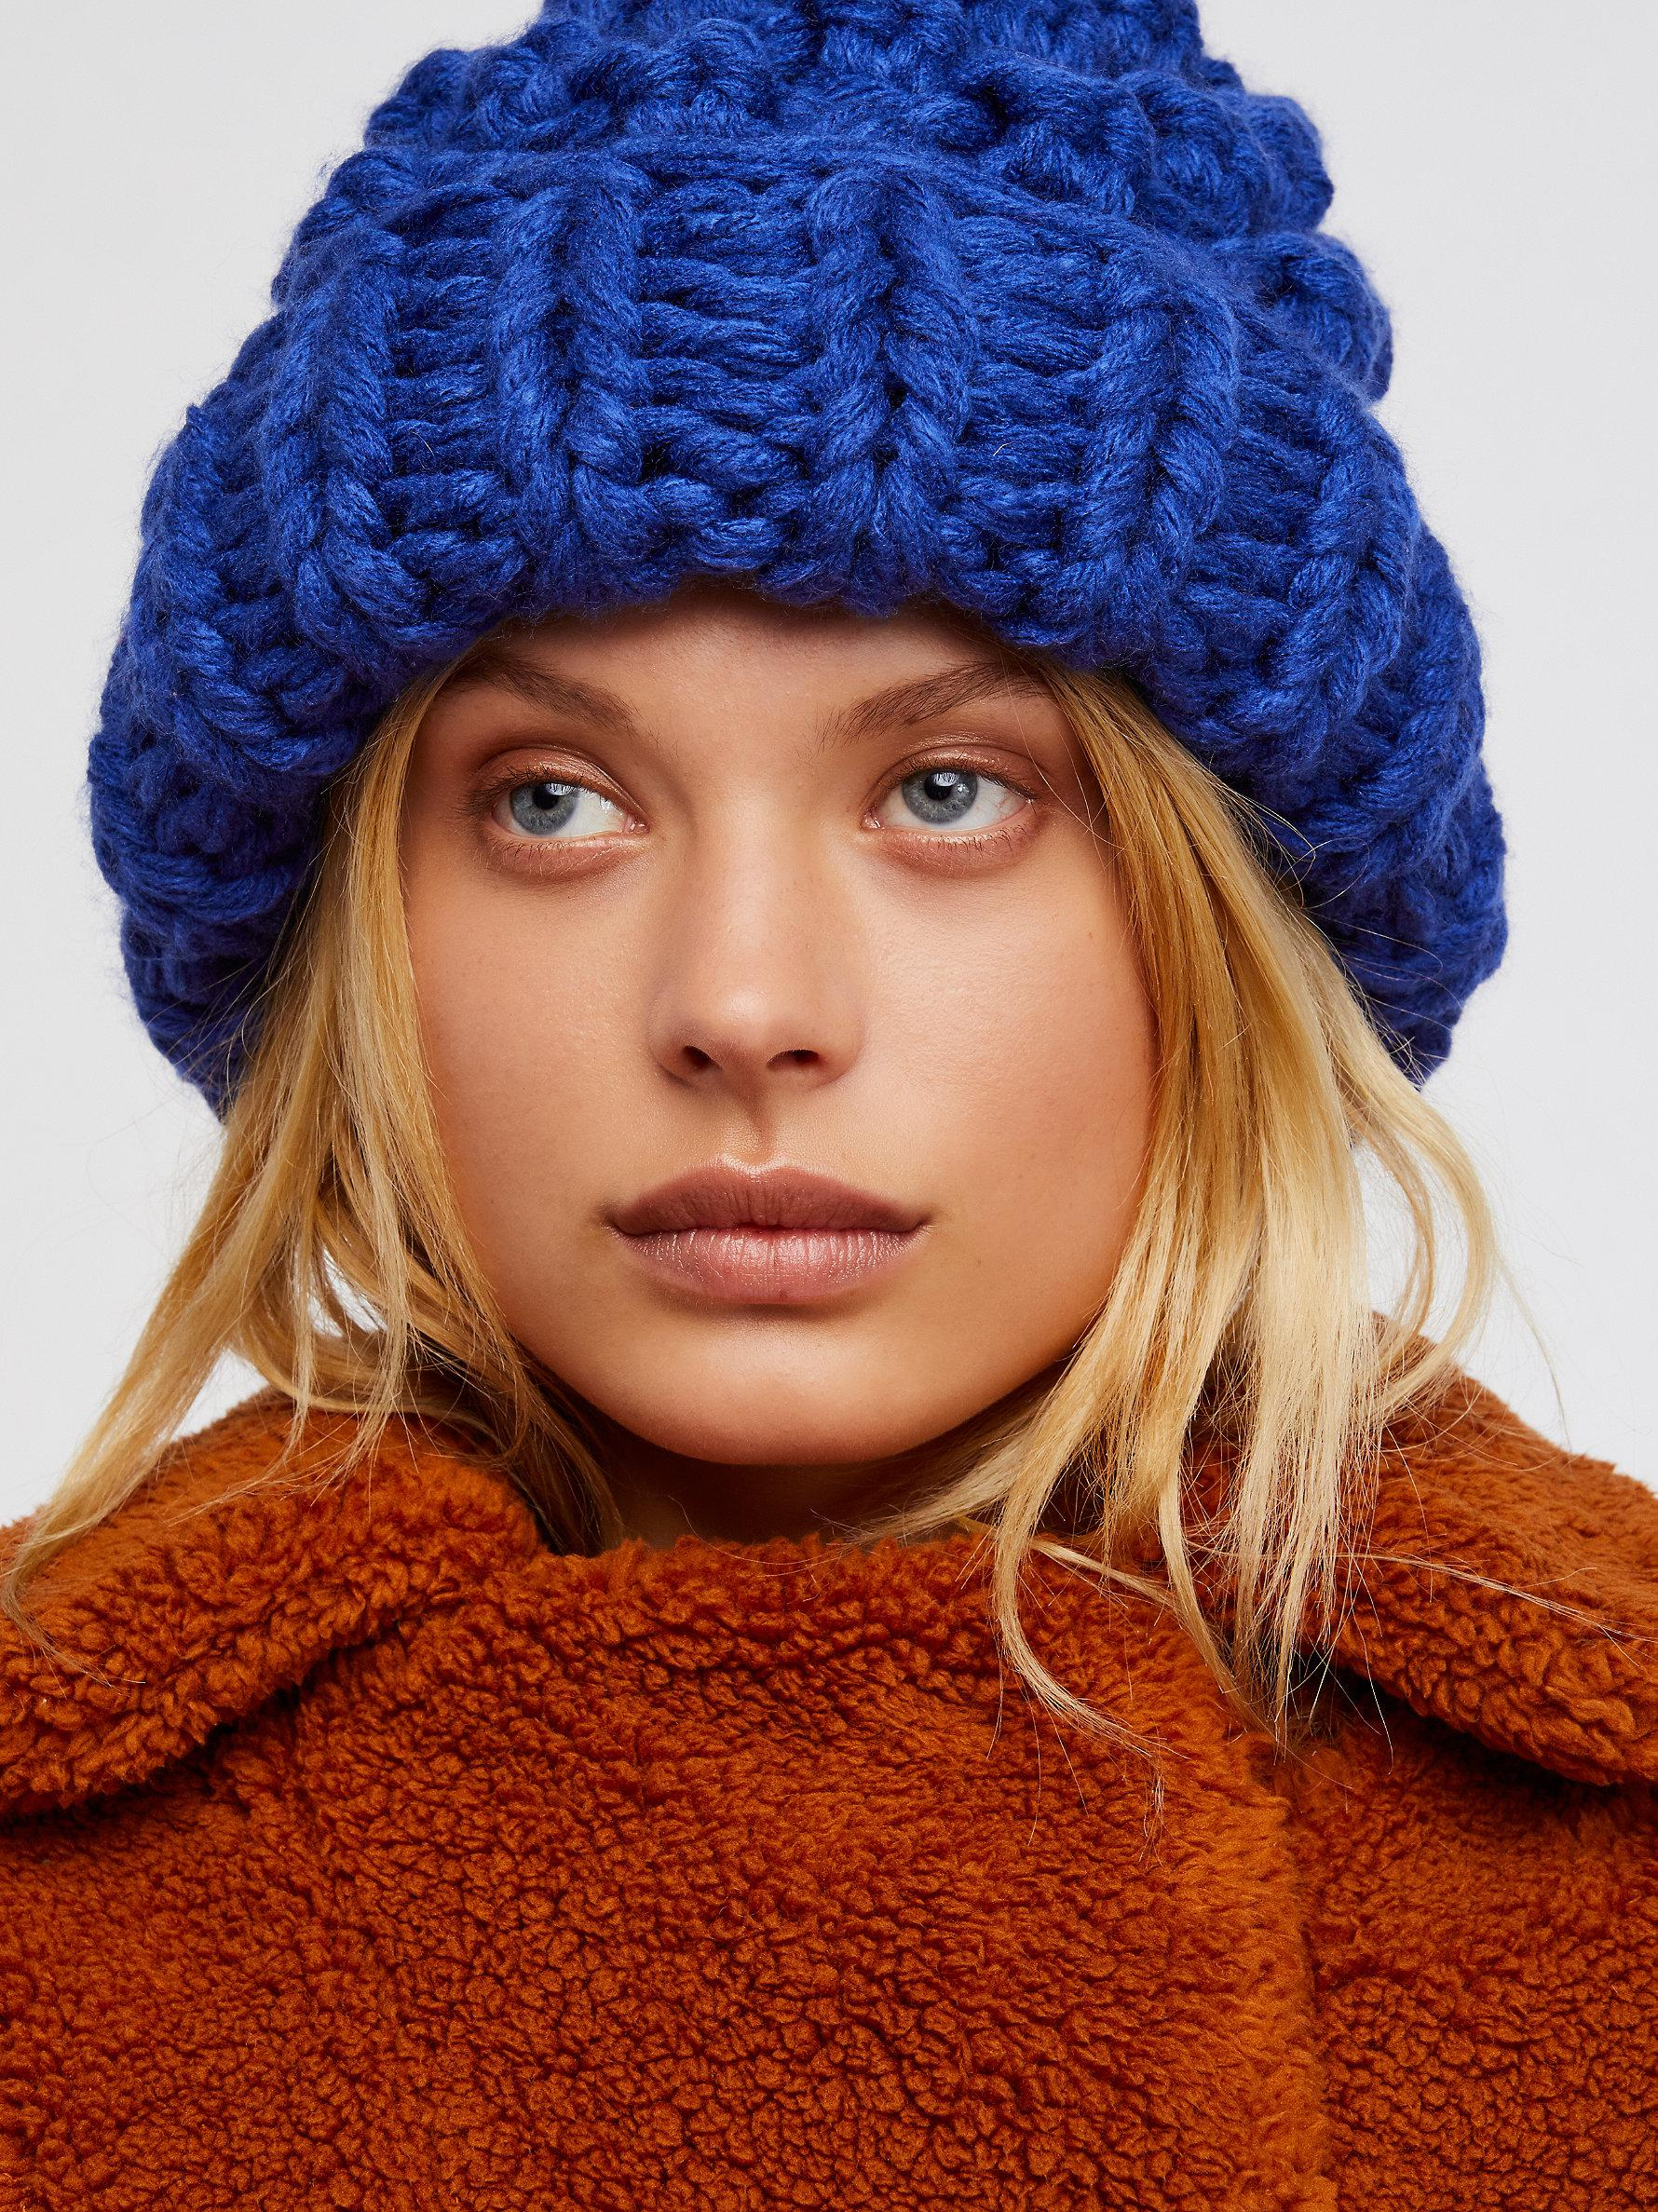 7a633ef1900d4 Free People Chunky Bobble Knit Beanie in Blue - Lyst